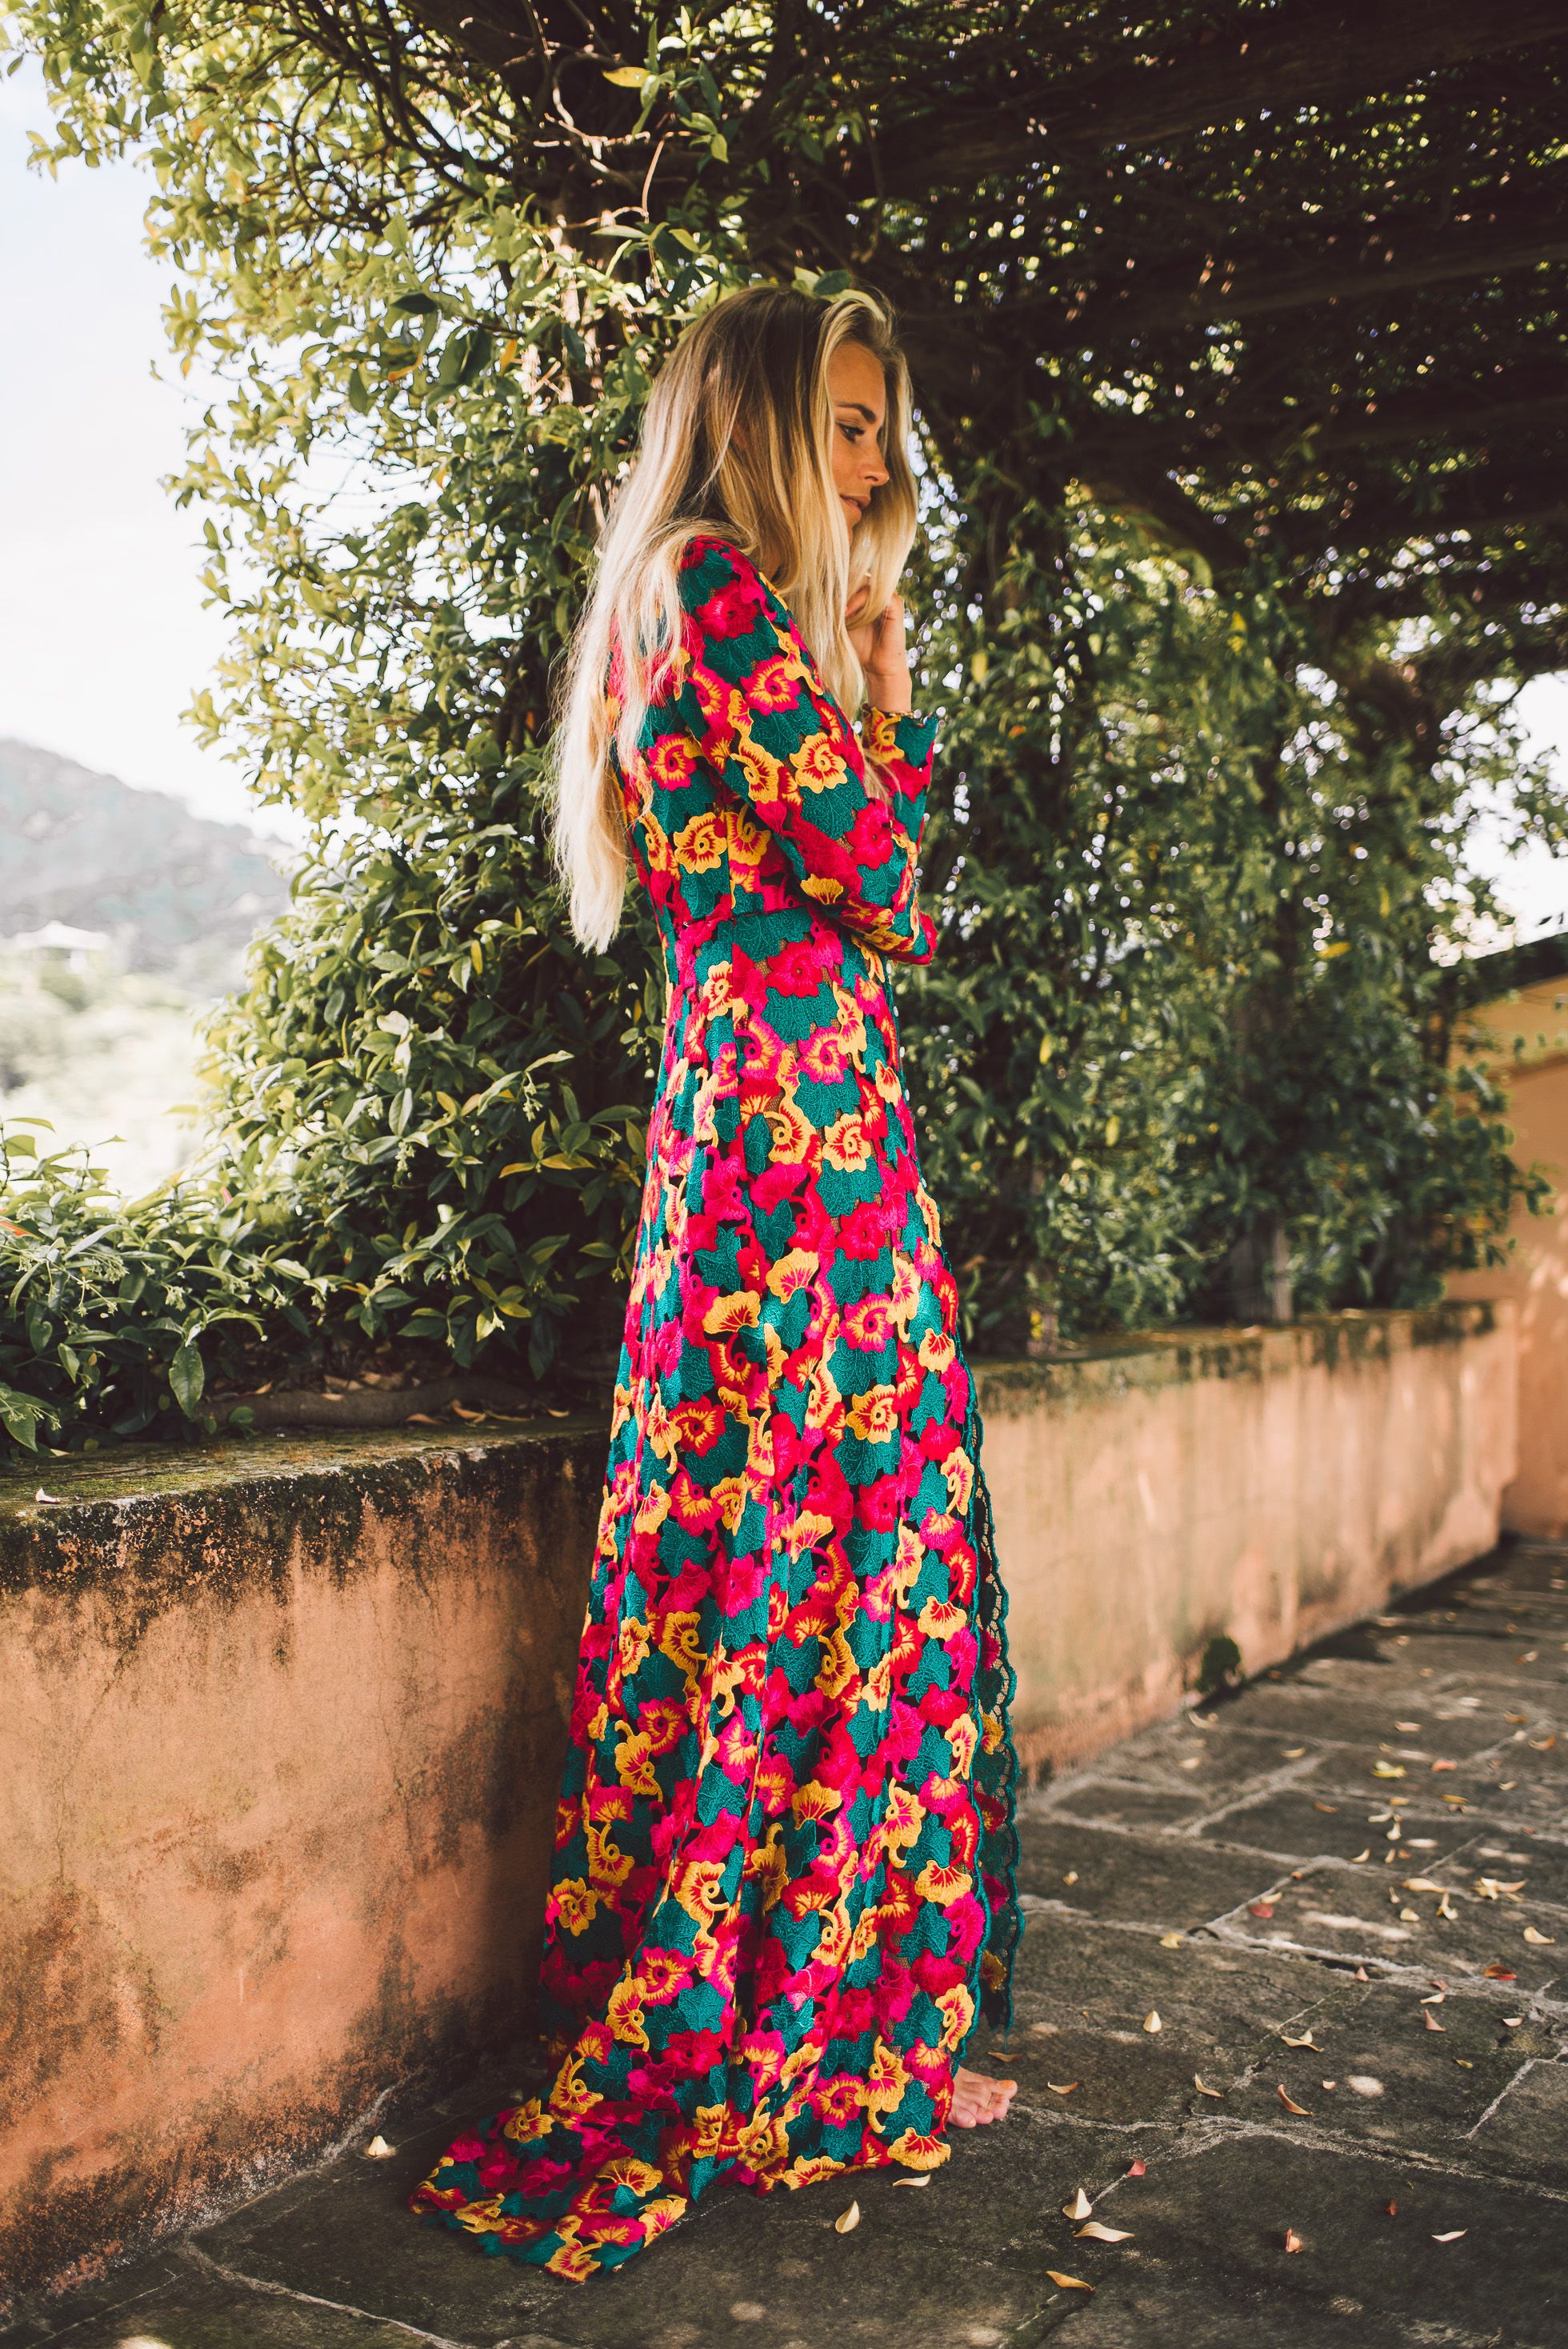 Beautiful Portofino <3 Wearing a Geraldina dress!  Hej hjärtan! Vet inte vart tiden försvann imorse, helt plötsligt var klockan 11 haha! Har jobbat undan massor och ska städa lite här hemma. :-) Jon hörde av sig imorse och berättade att han kommer hit ikväll - ÄNTLIGEN!!! Sjukt längesen vi träffa